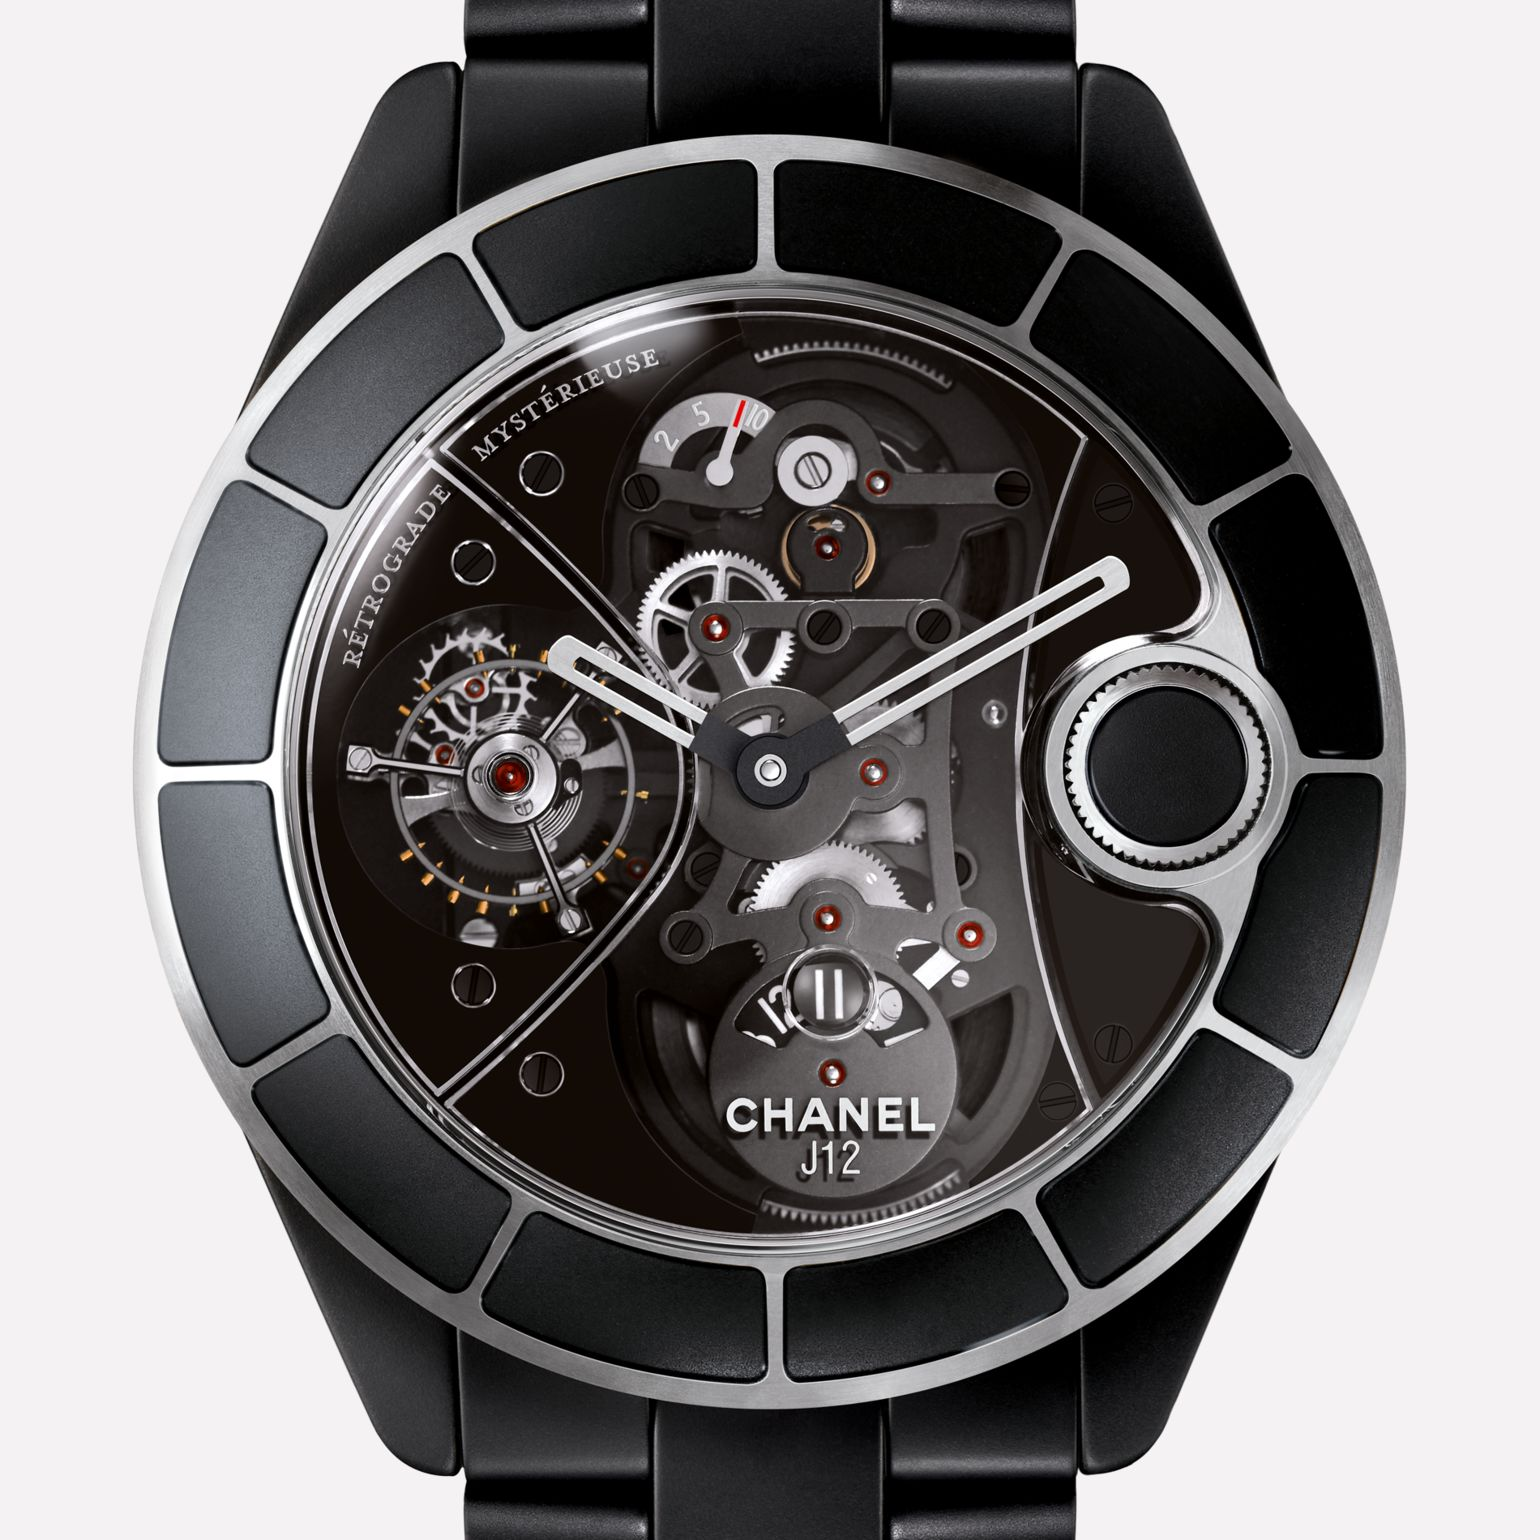 J12 RMT Matt black ceramic, APRP retrograde mysterious calibre and tourbillon for CHANEL, retractable crown